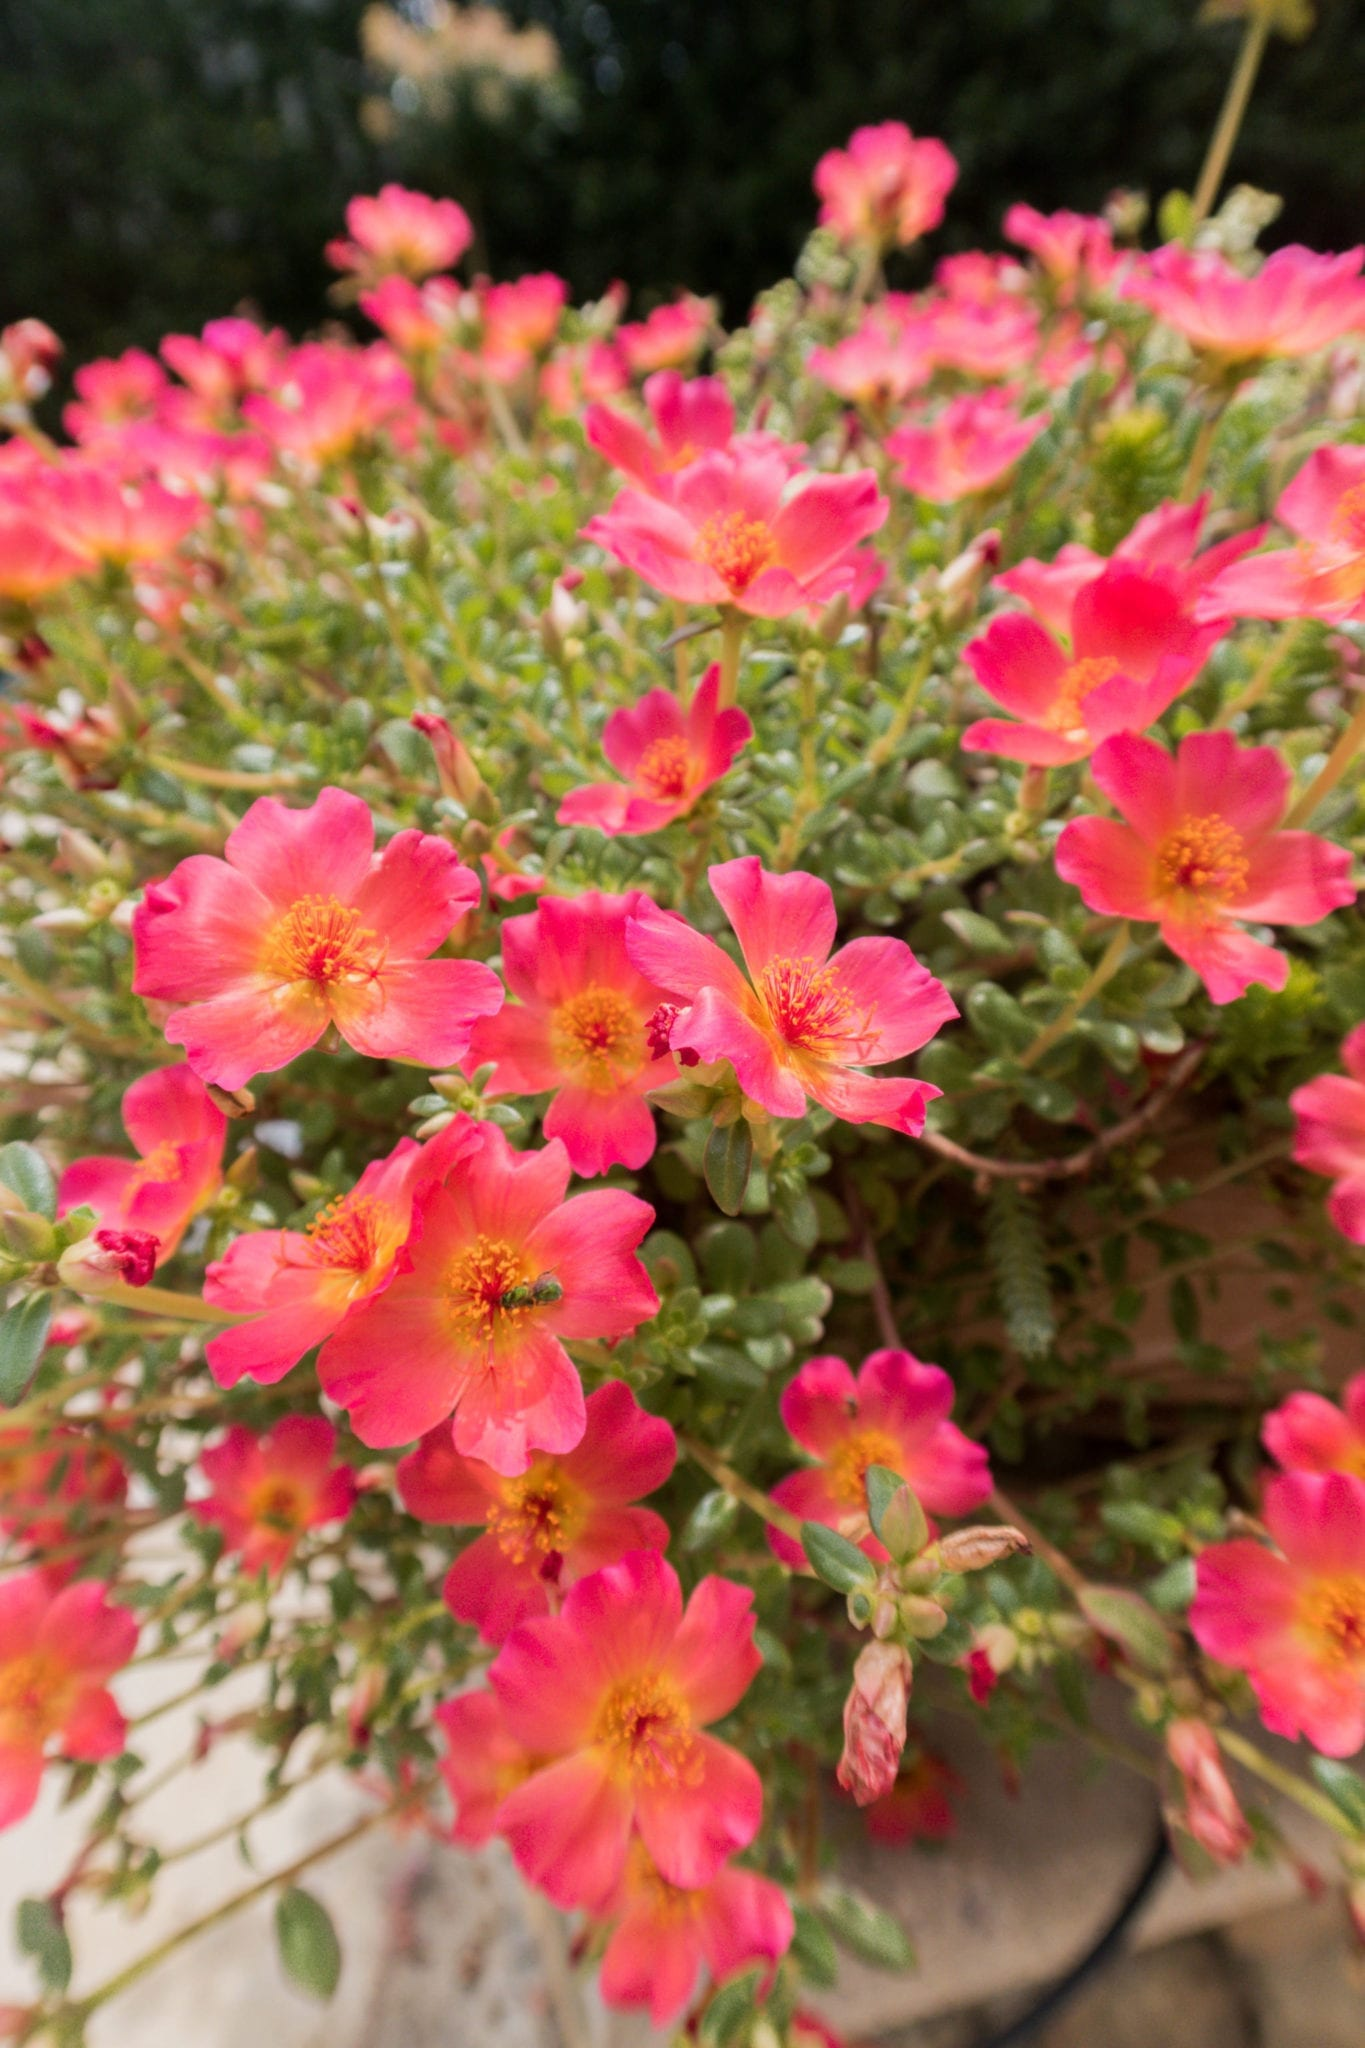 Flowering Succulents full of color that don't require much water or care at all. Drought tolerant container planters.